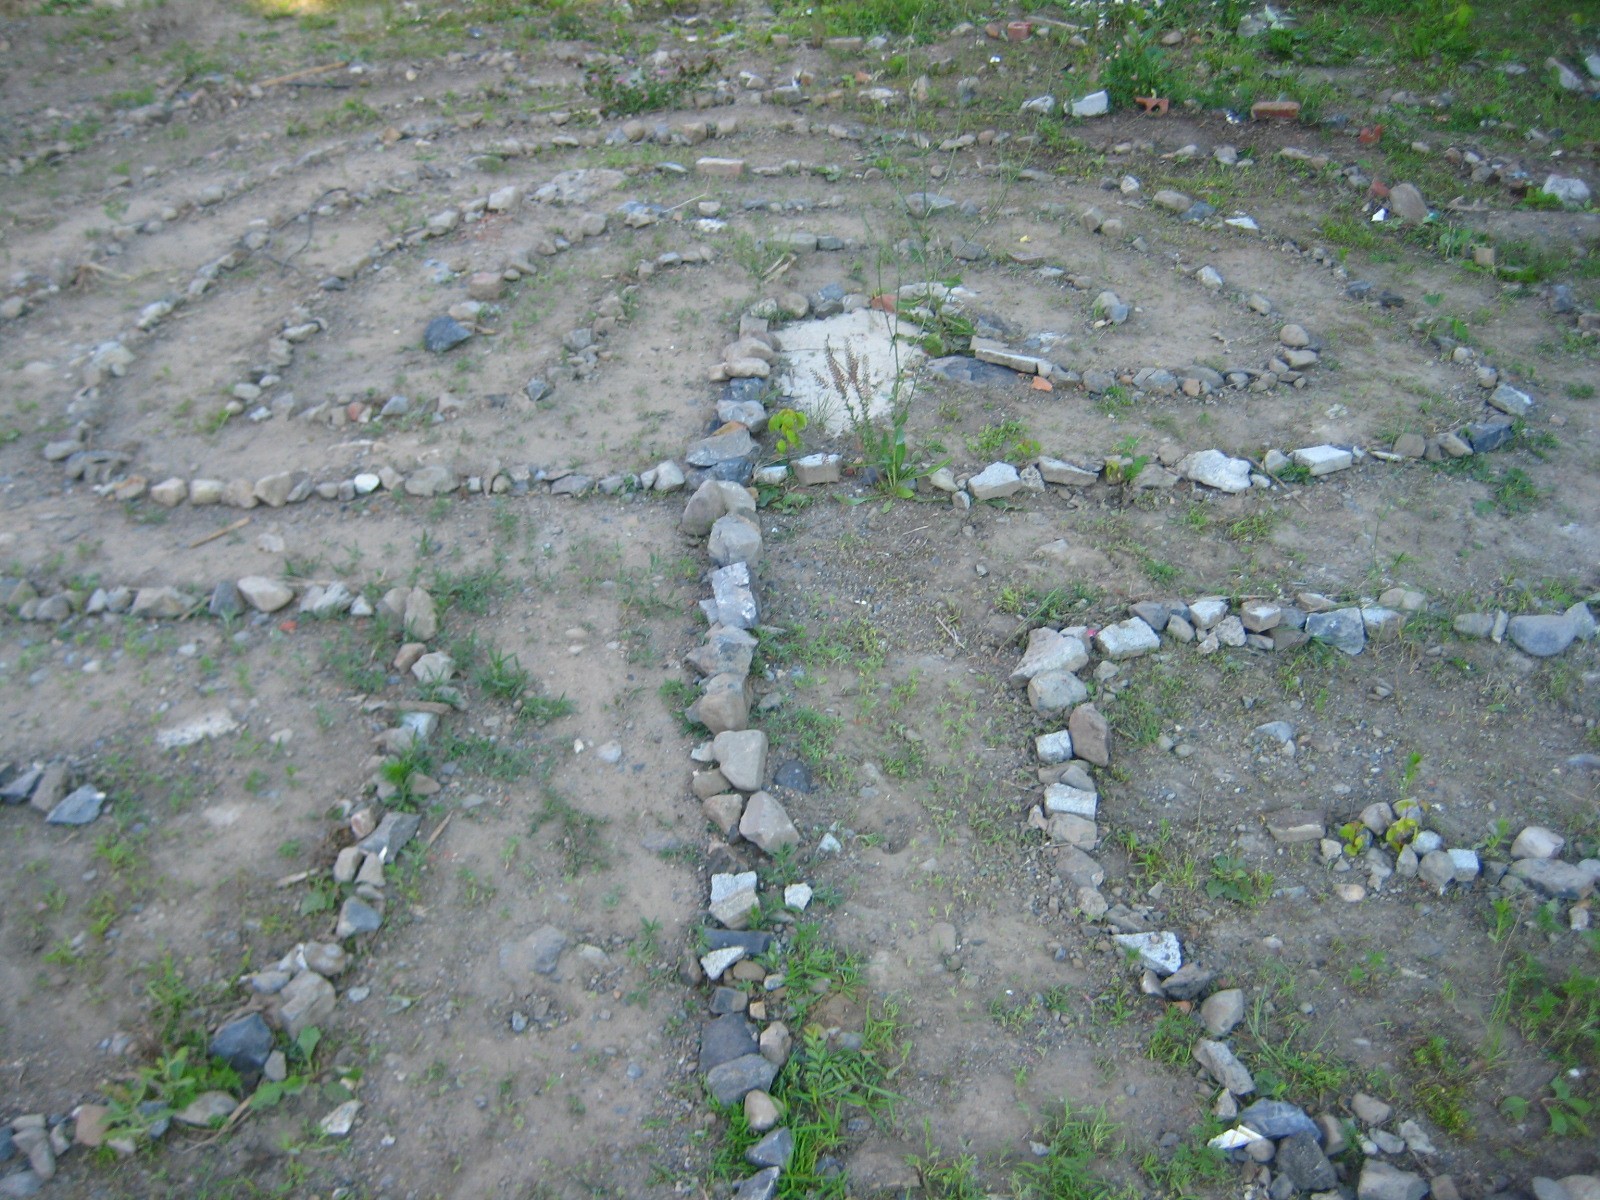 Classic Rock Labyrinth in an abandoned lot after a few hours work